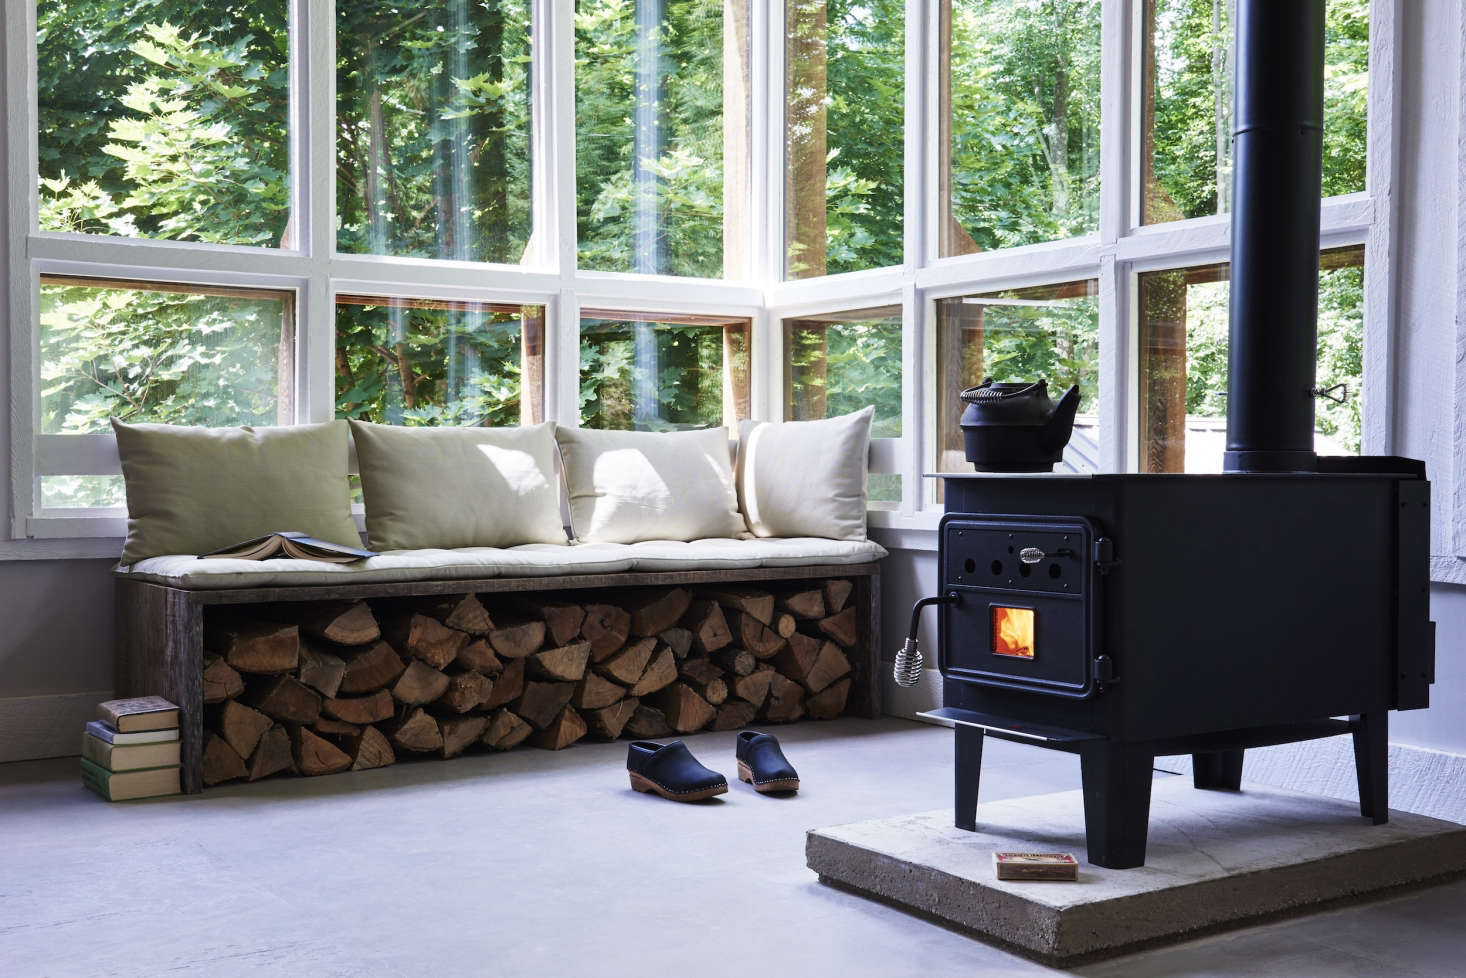 Near the Vogelzang Durango woodstove is an inventive storage solution: stacked logstucked beneath a bench.